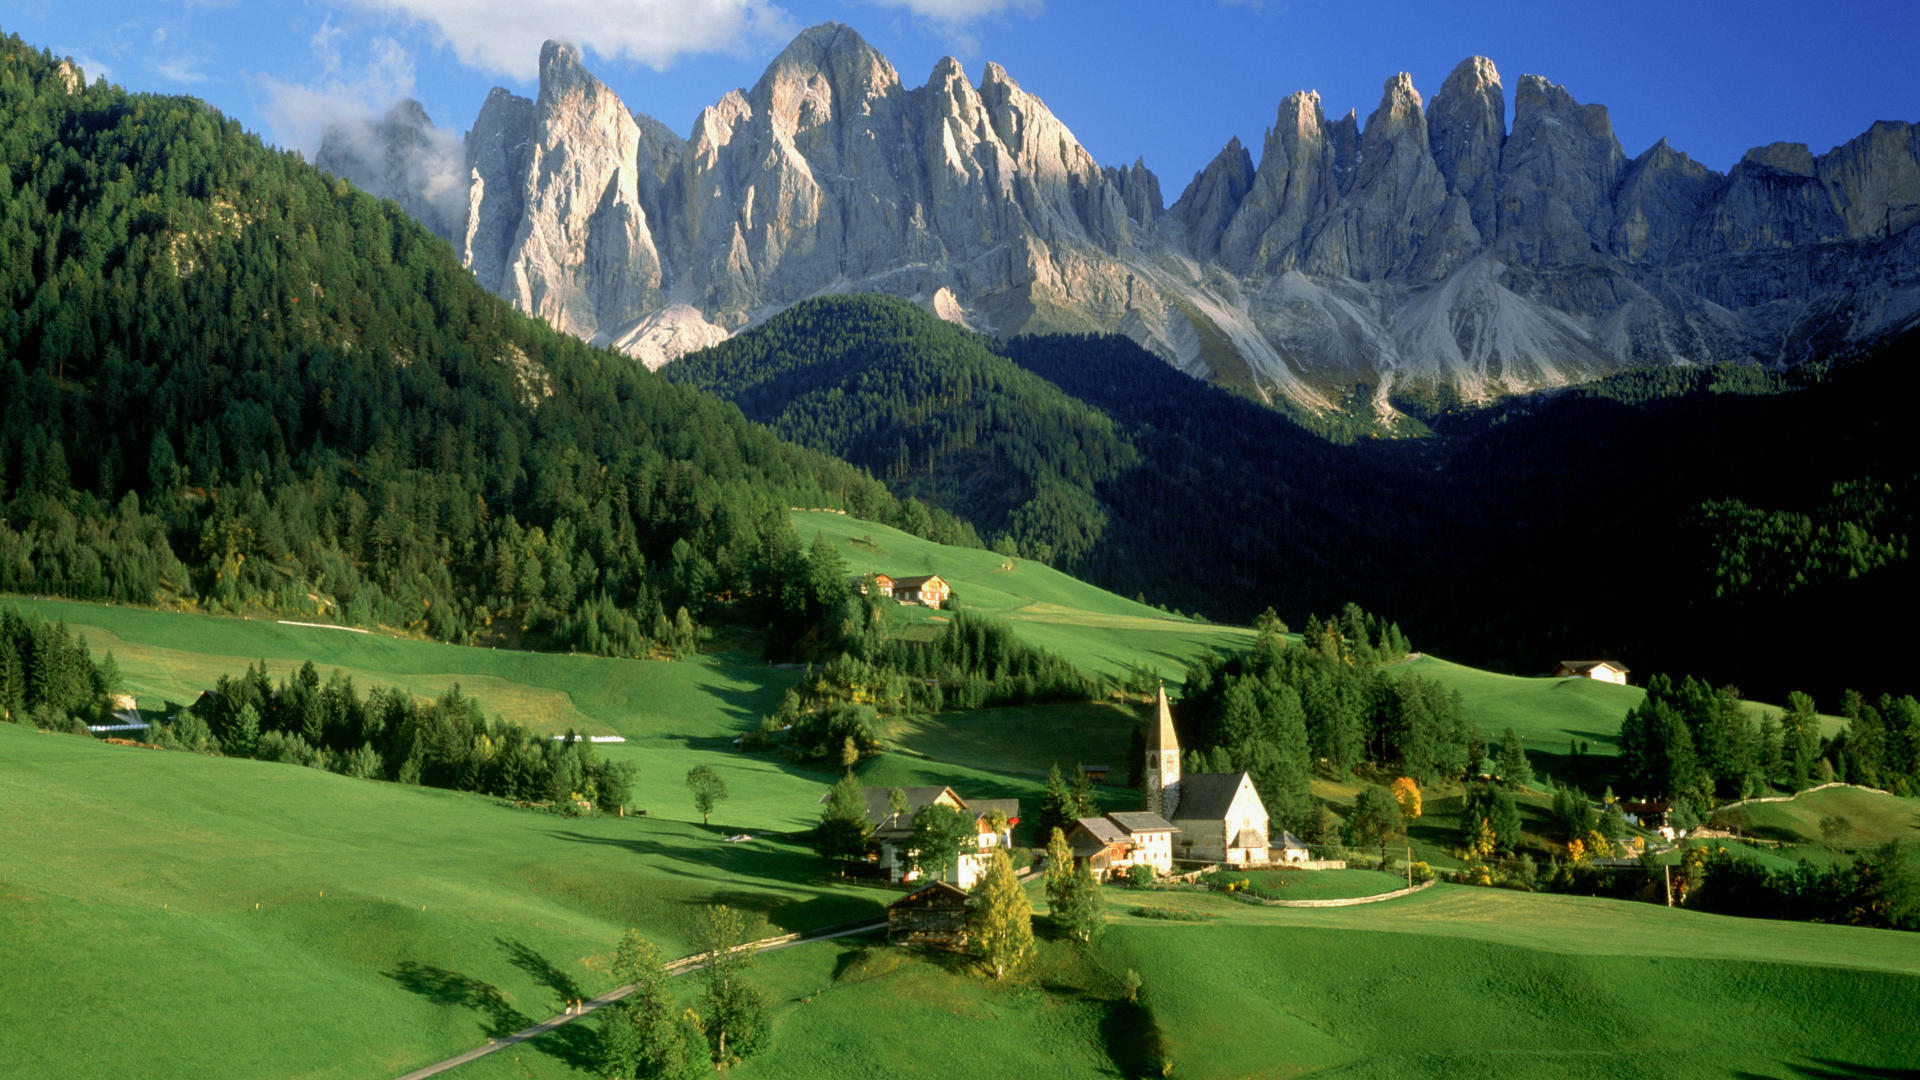 Susa val di funes dolomites wallpaper picture 1920x1080 hd wallpaper